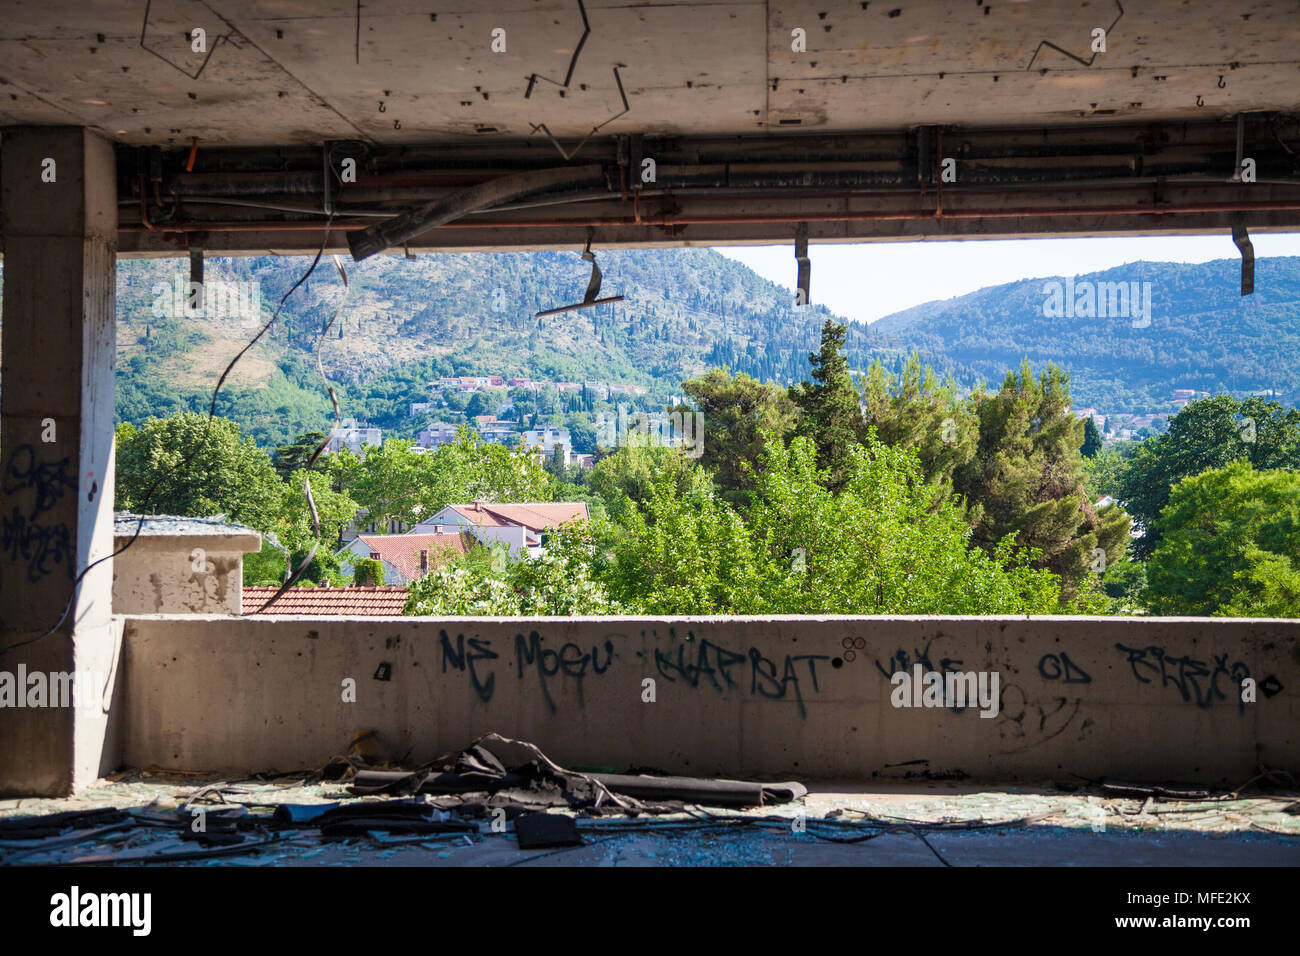 View of Mostar from a bombed out building from the Bosnian War in Mostar, Bosnia and Herzegovina - Stock Image